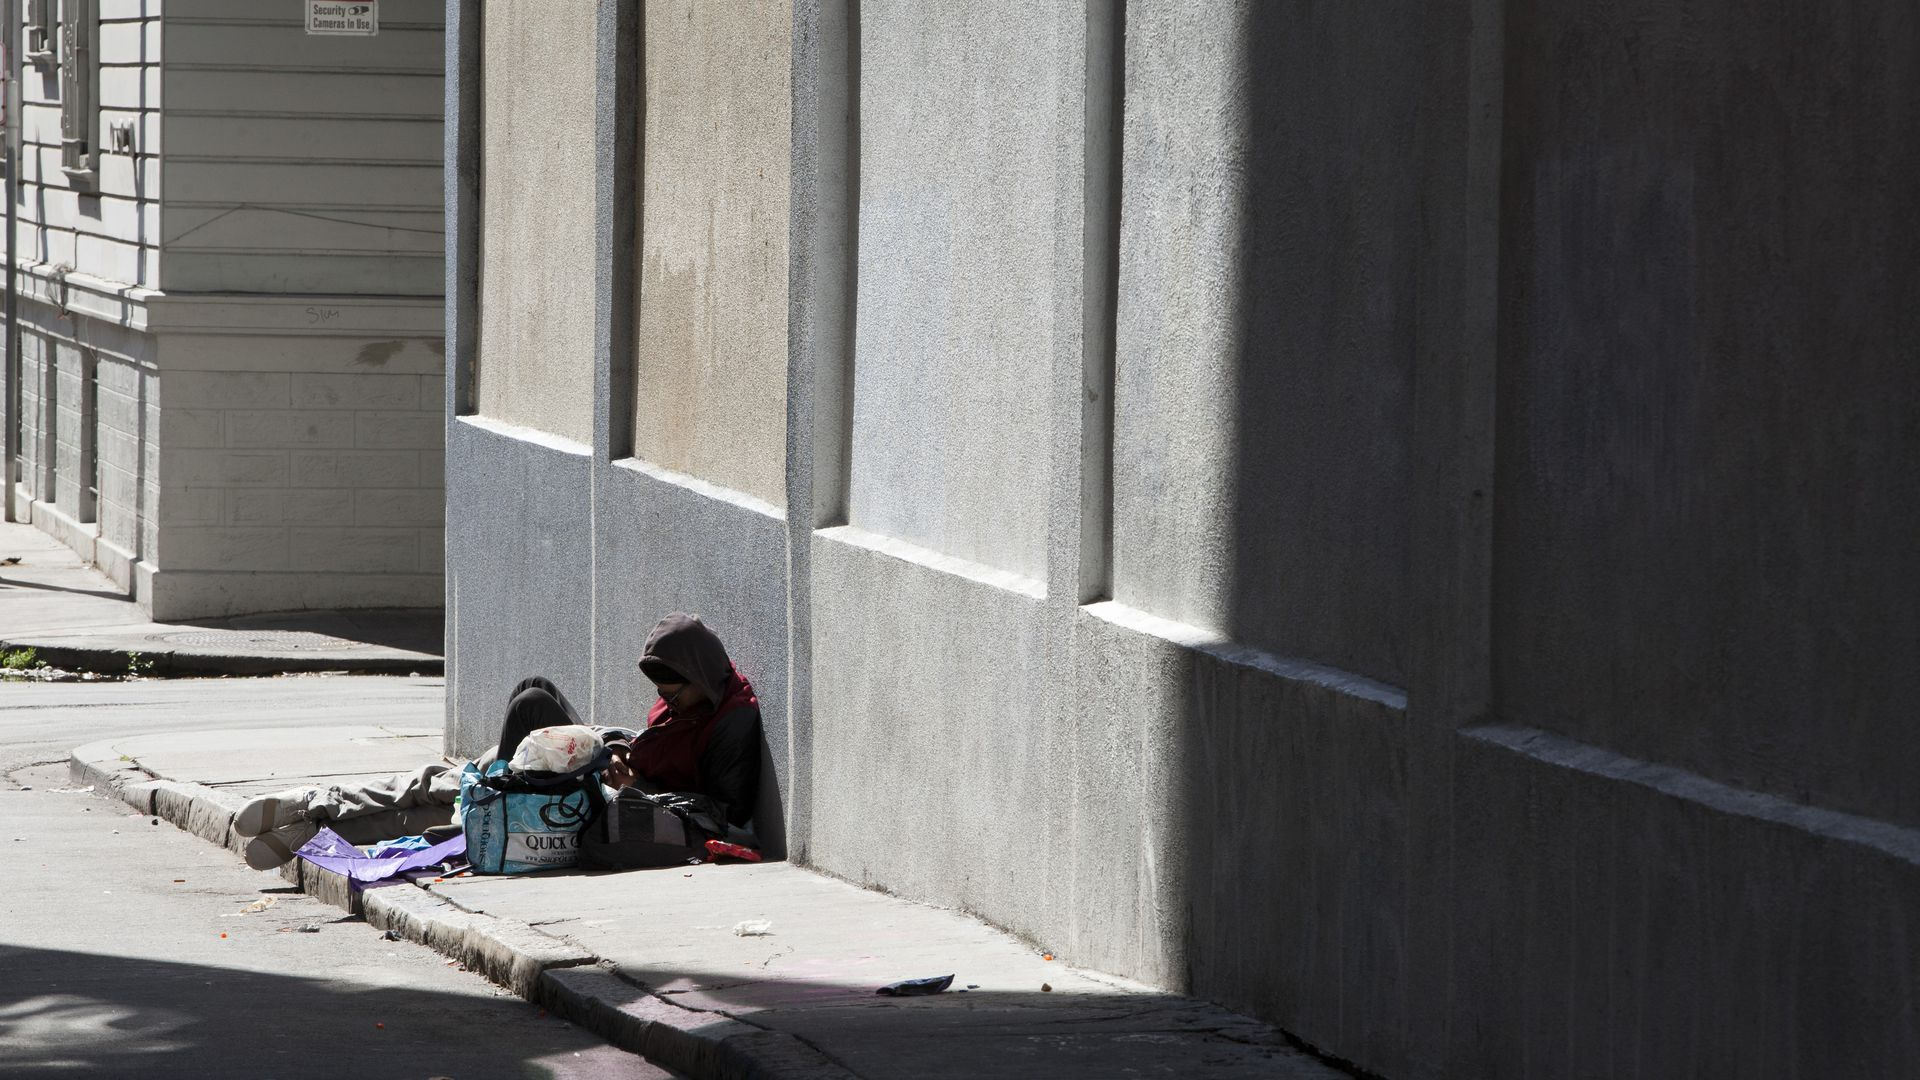 A homeless person on a San Francisco street